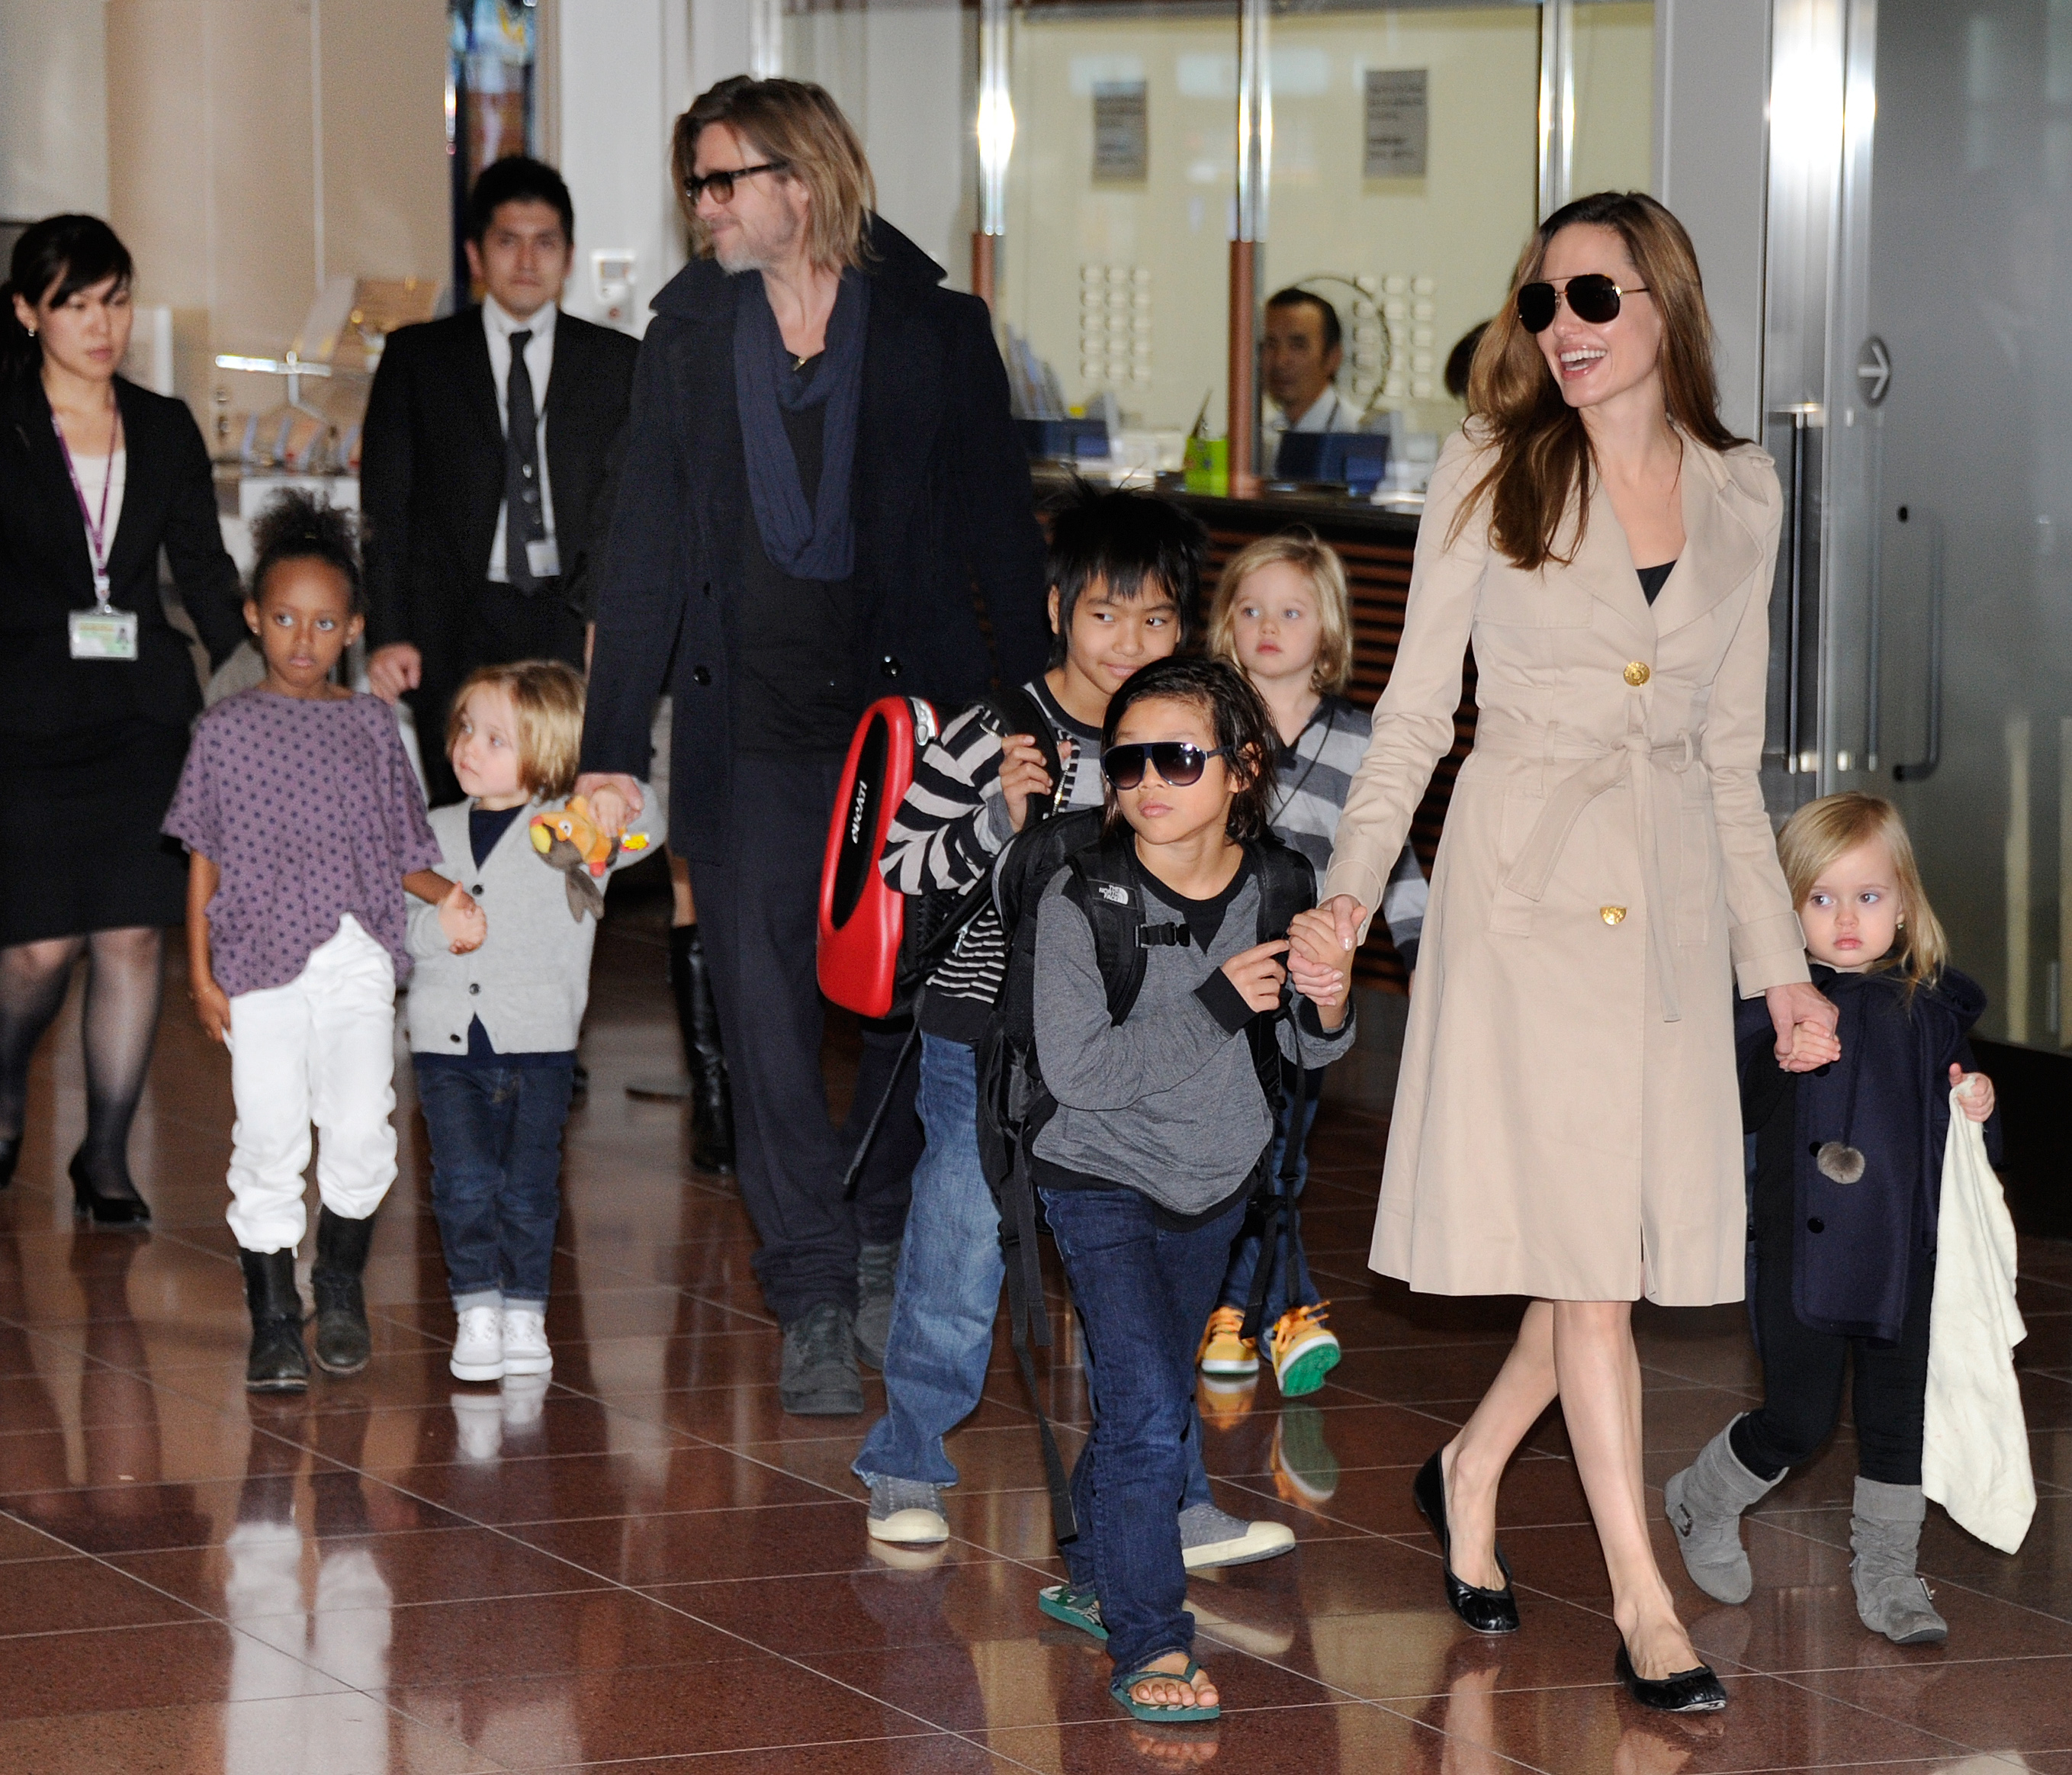 Maddox Jolie-Pitt refuses to see dad Brad Pitt